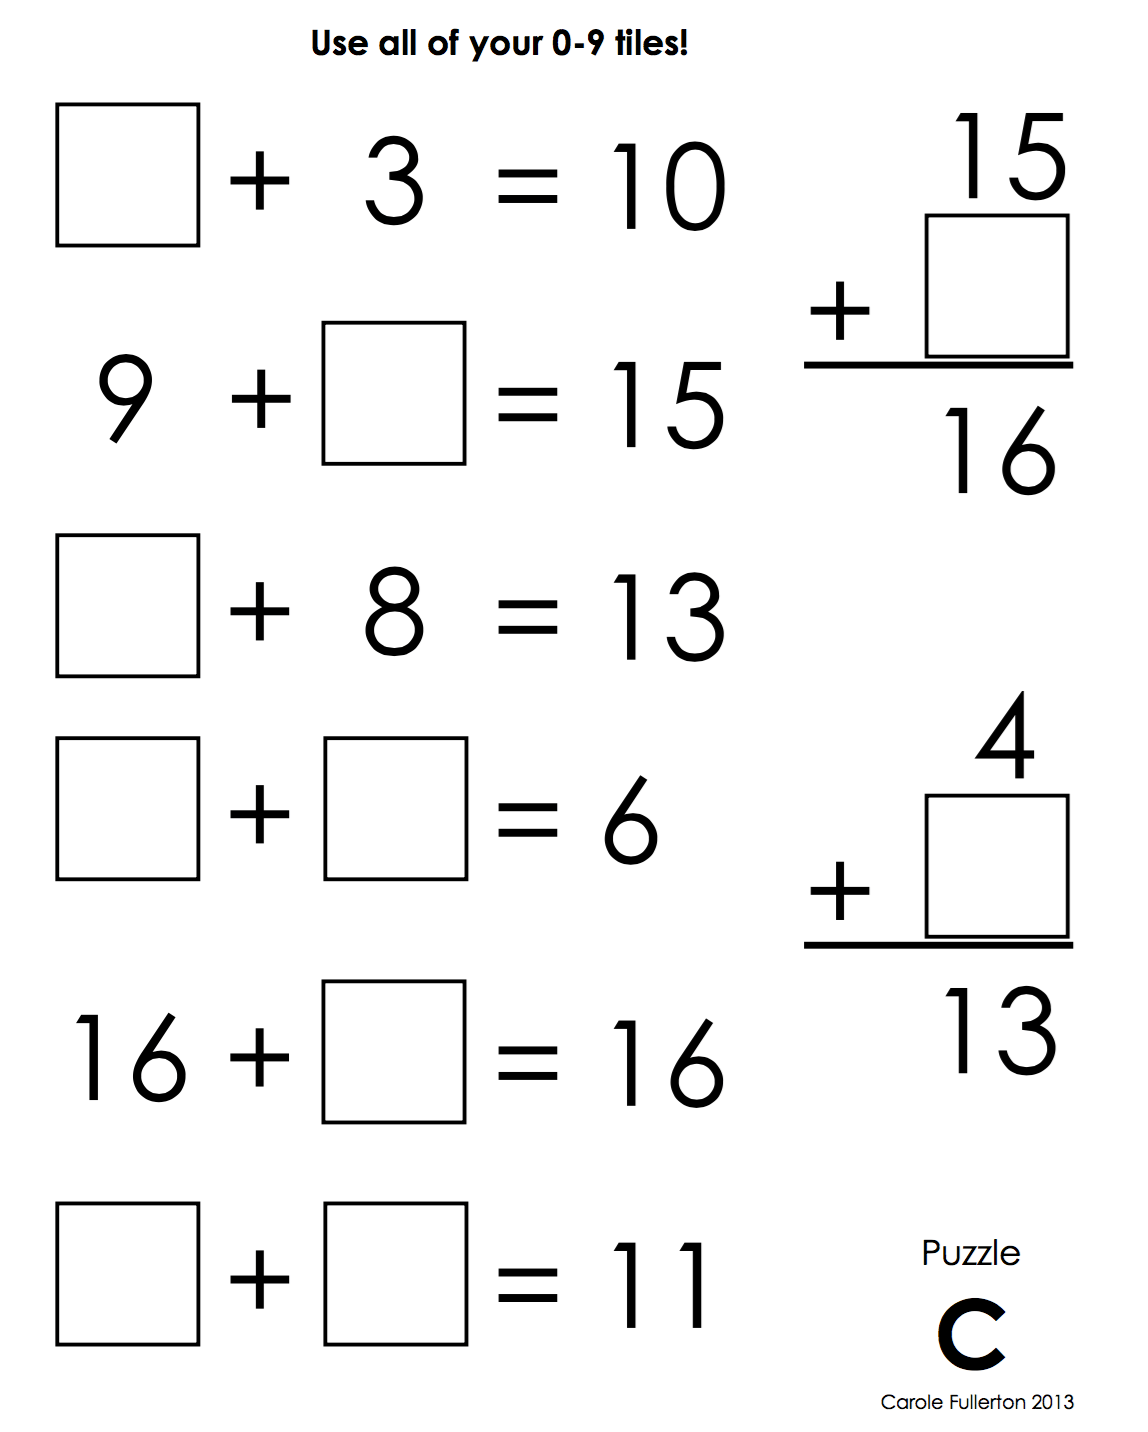 Number Tile Puzzles Primary And Intermediate